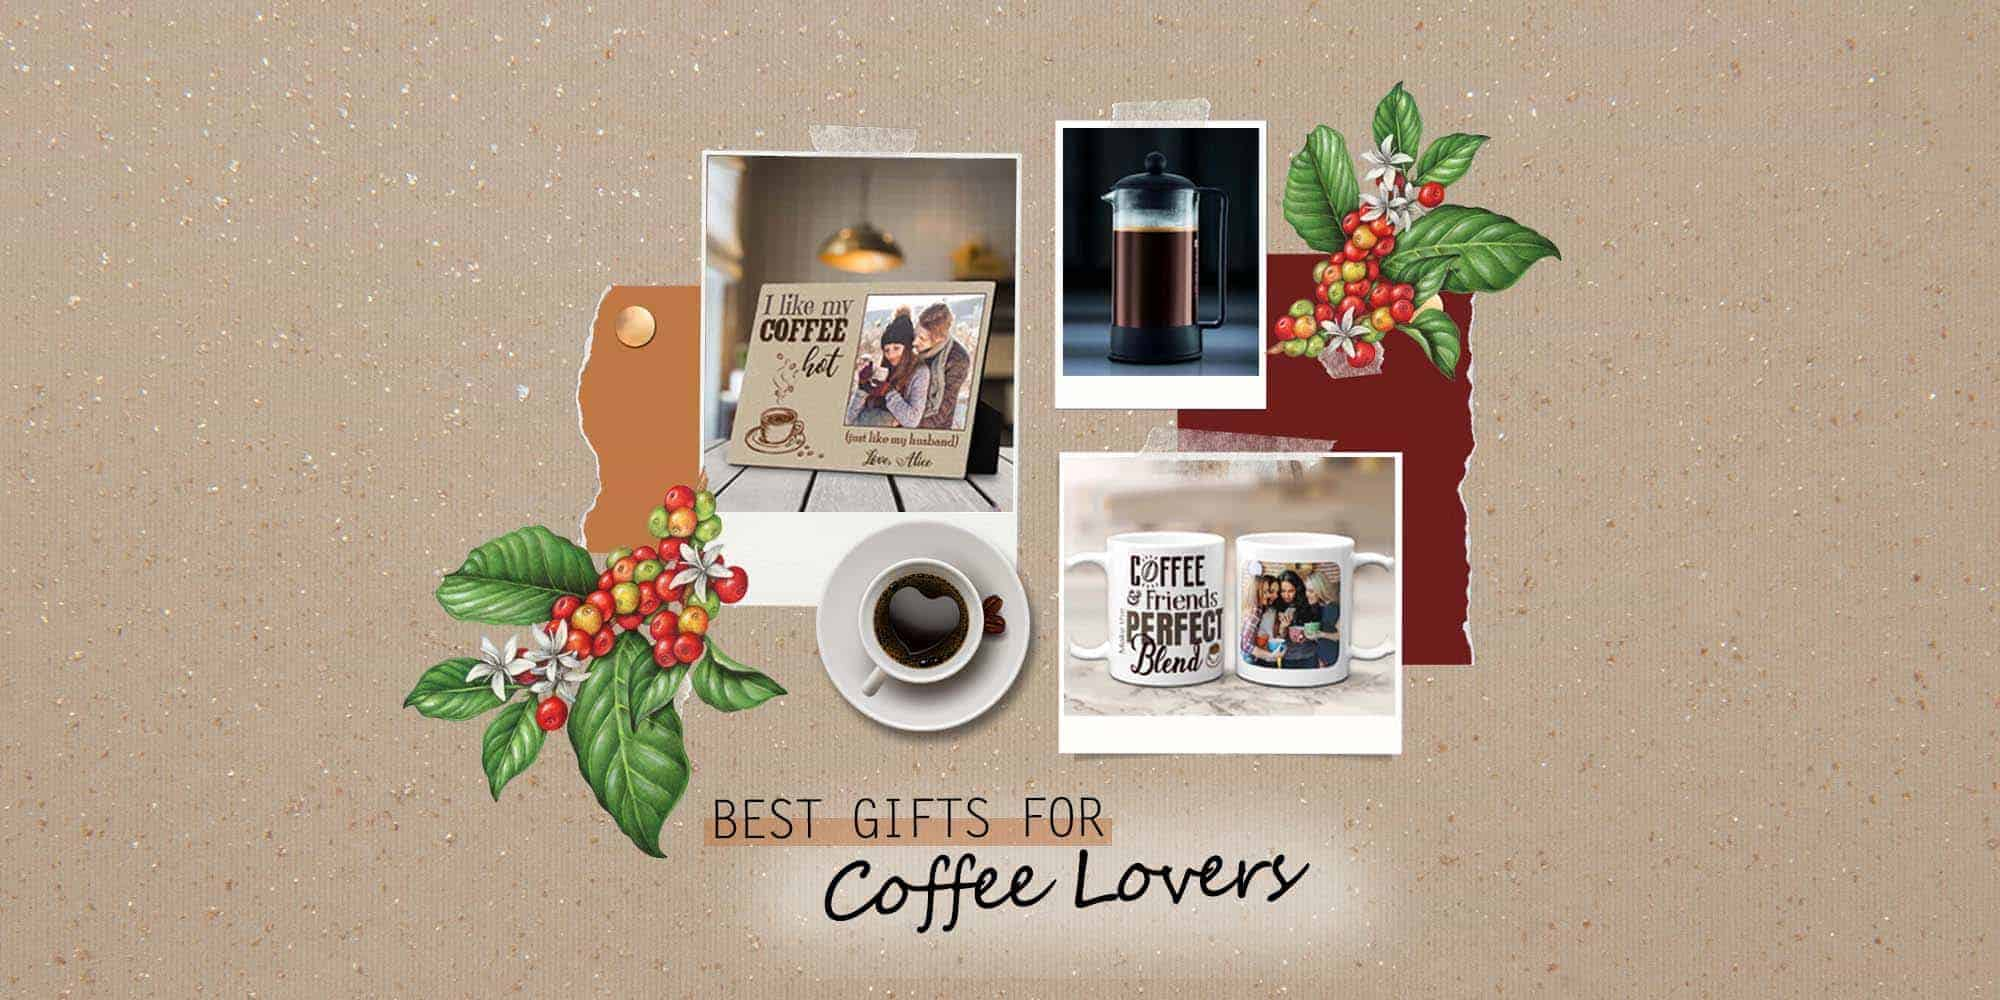 45+ Best Gifts for Coffee Lovers for Any Occasion (2021)